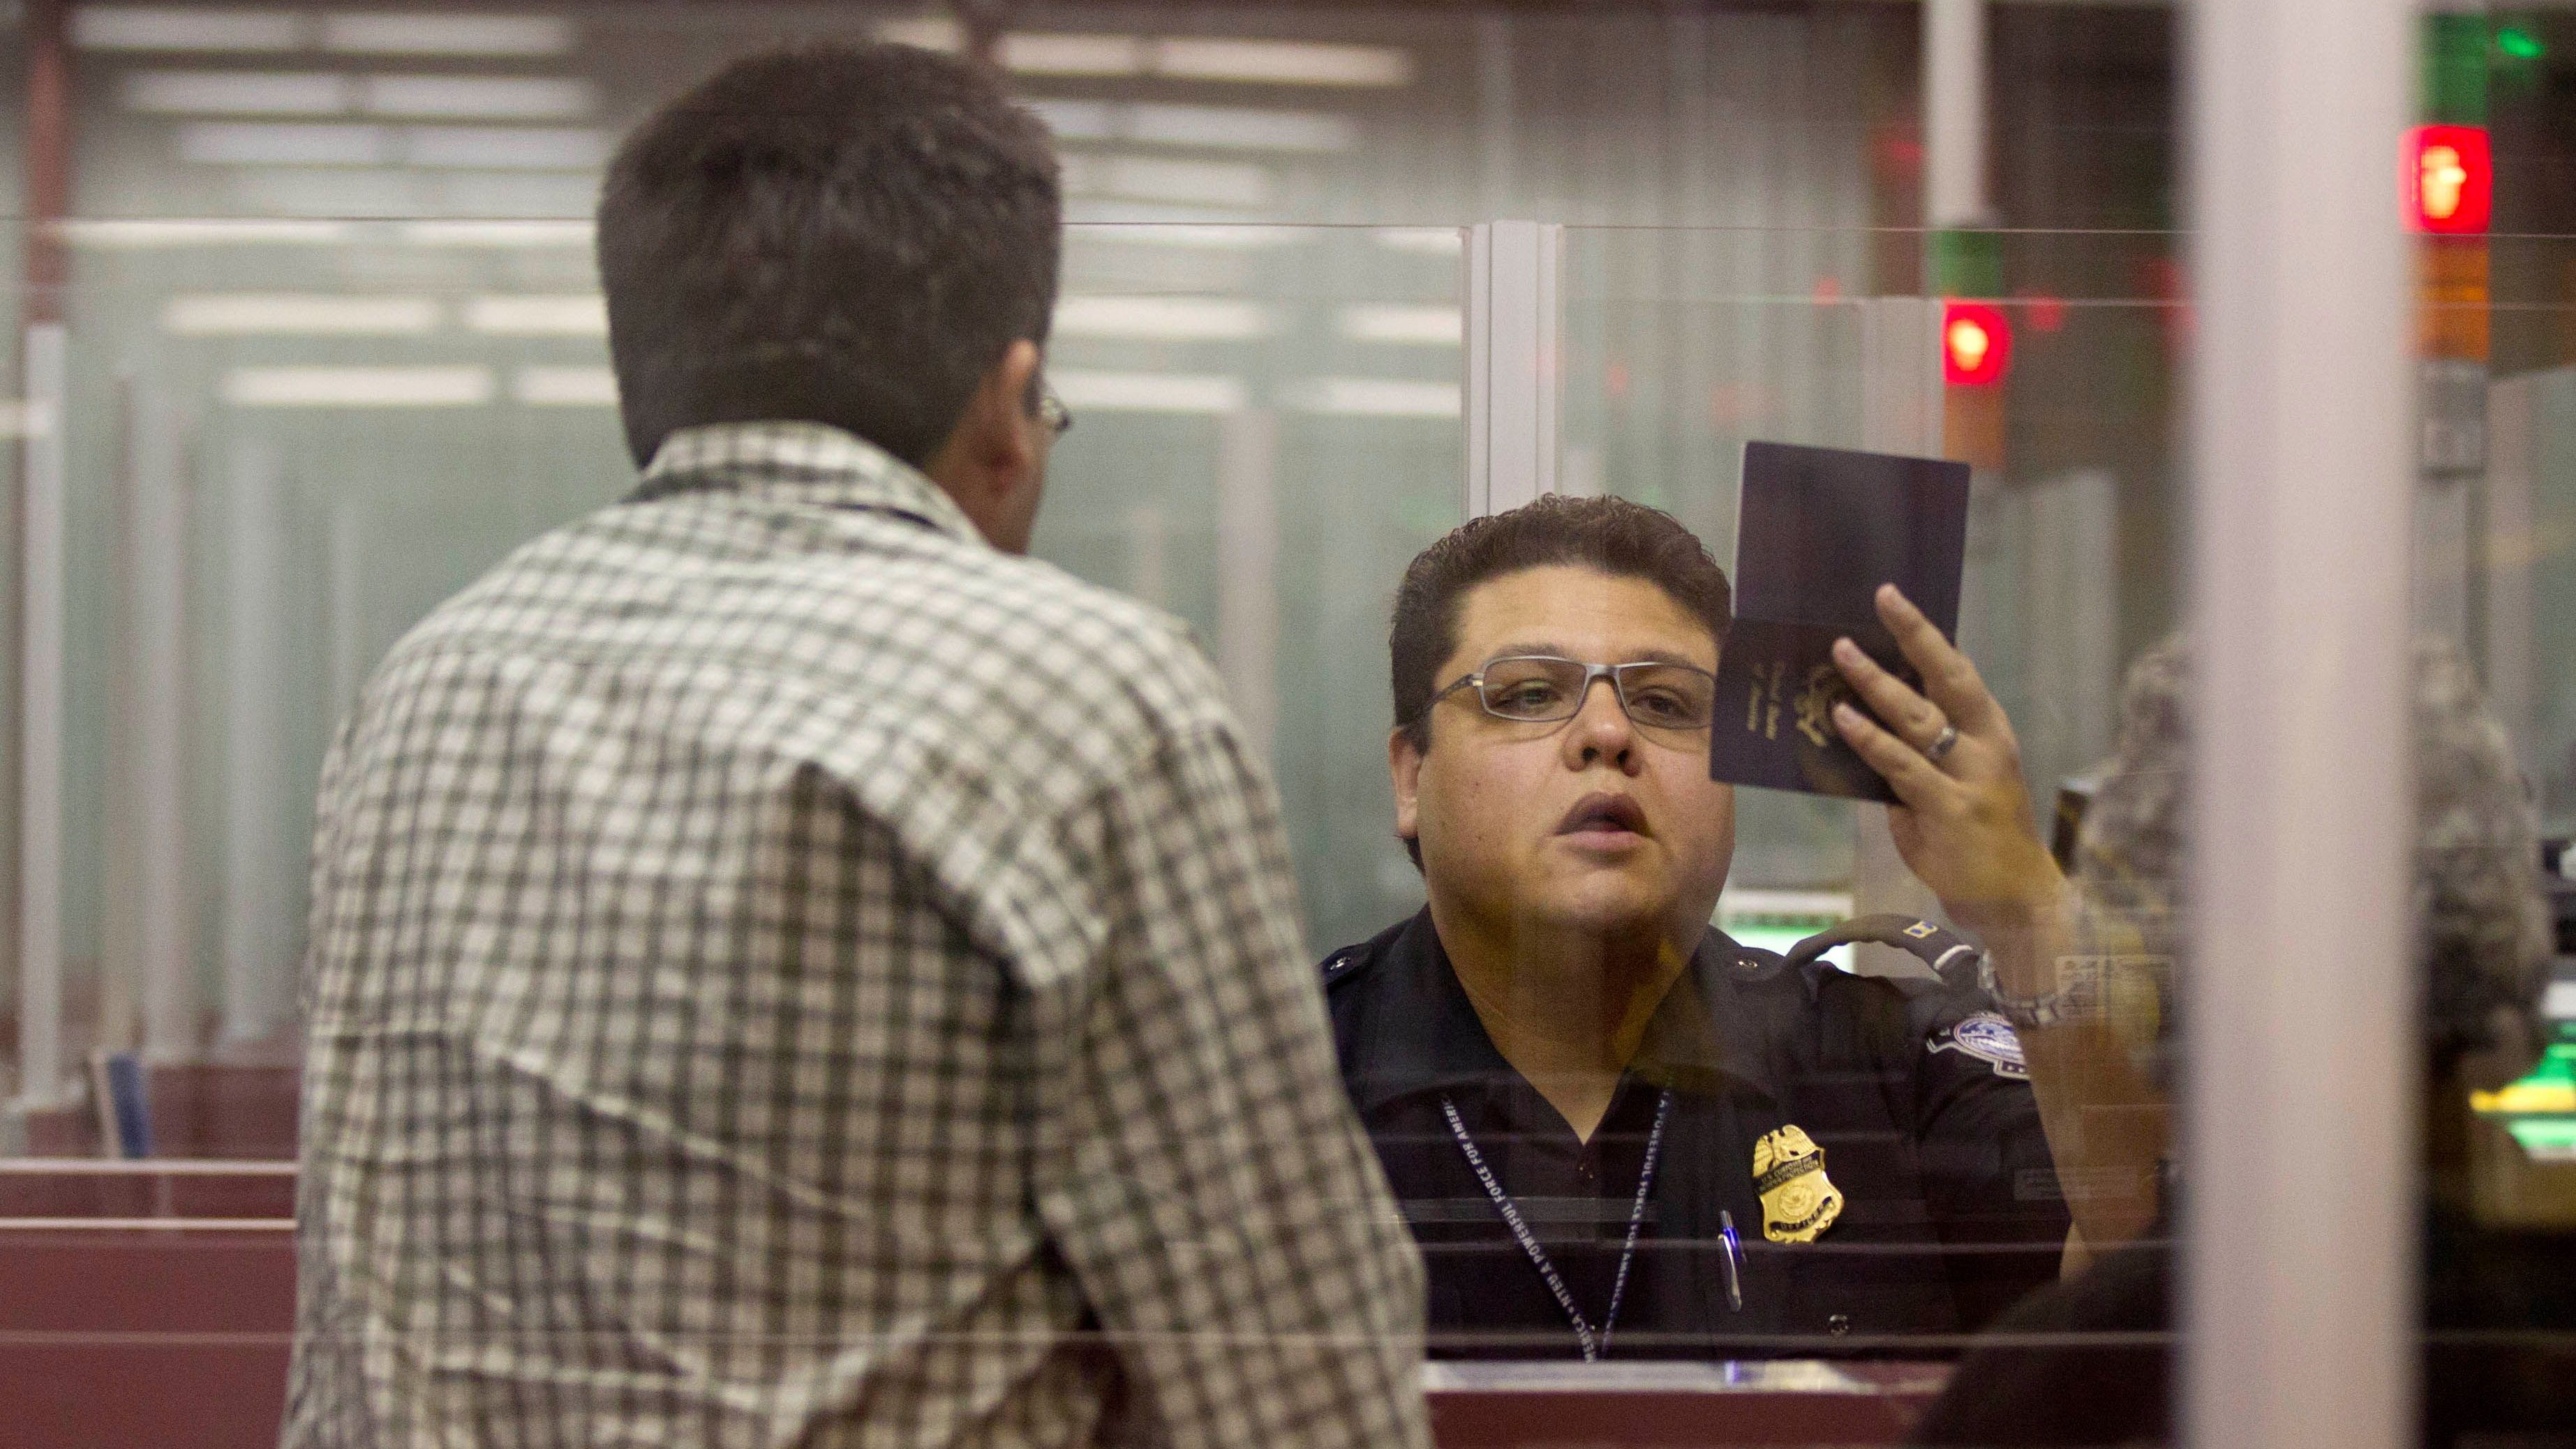 A Customs and Border Protection officer checks the passport of a non-resident visitor to the United States inside immigration control at McCarran International Airport, Tuesday, Dec. 13, 2011, in Las Vegas.   The U.S. Travel Association is pushing Congress to make it easier for foreigners to visit the United States. Nearly 7.6 million nonimmigrant visas were issued in 2001, compared to fewer than 6.5 million in 2010. Tourism leaders in the United States say the decline symbolizes a diplomacy failure that is costing American businesses $859 billion in untapped revenue. ()